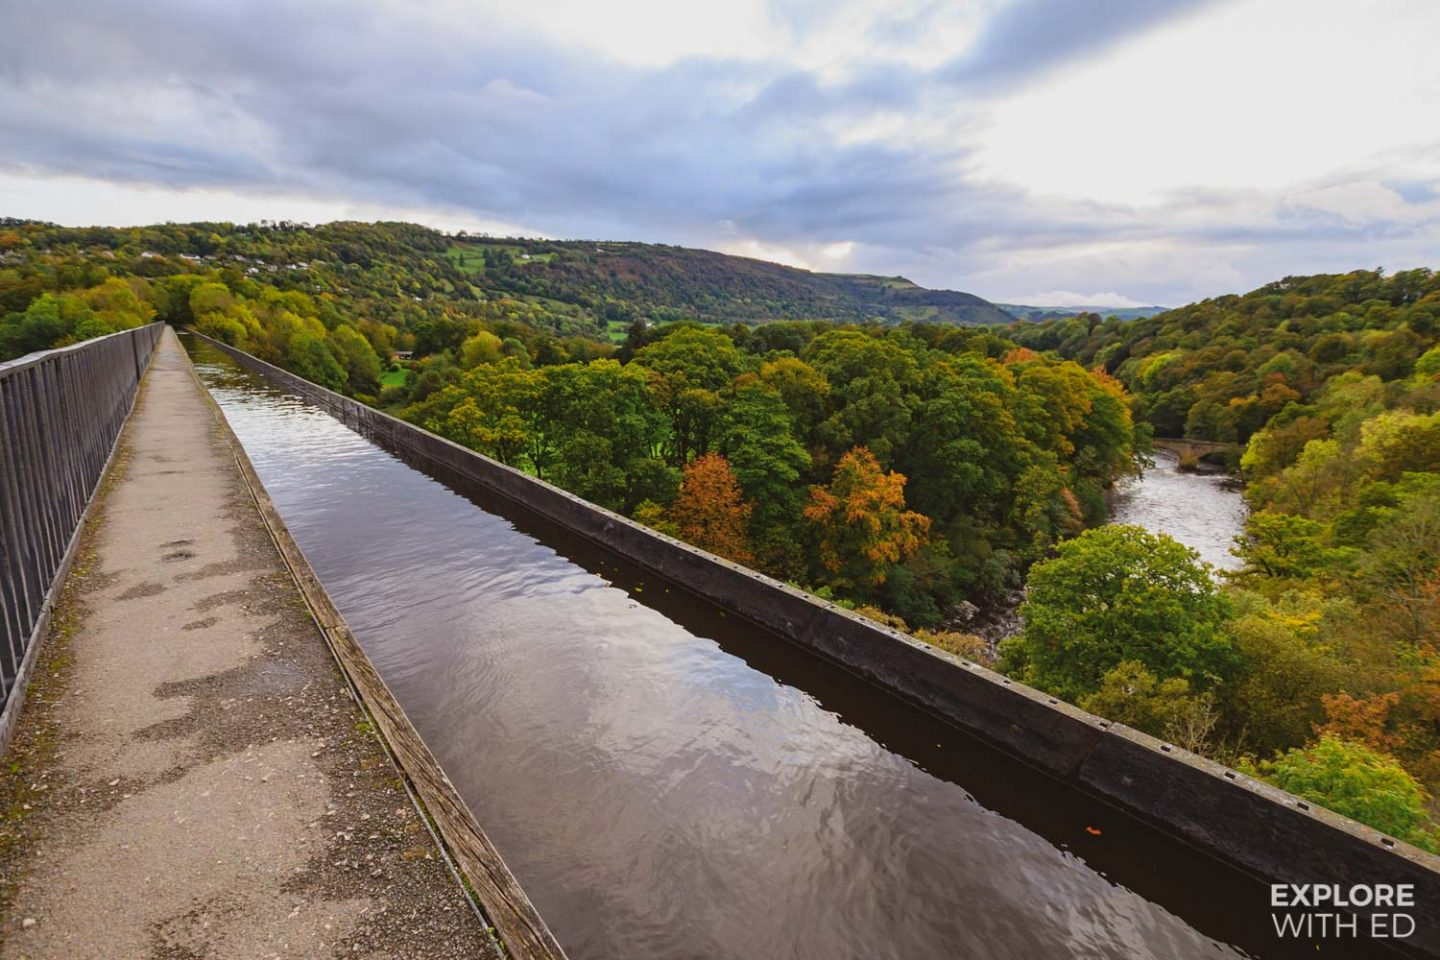 The Pontcysyllte Aqueduct in Wrexham, North Wales